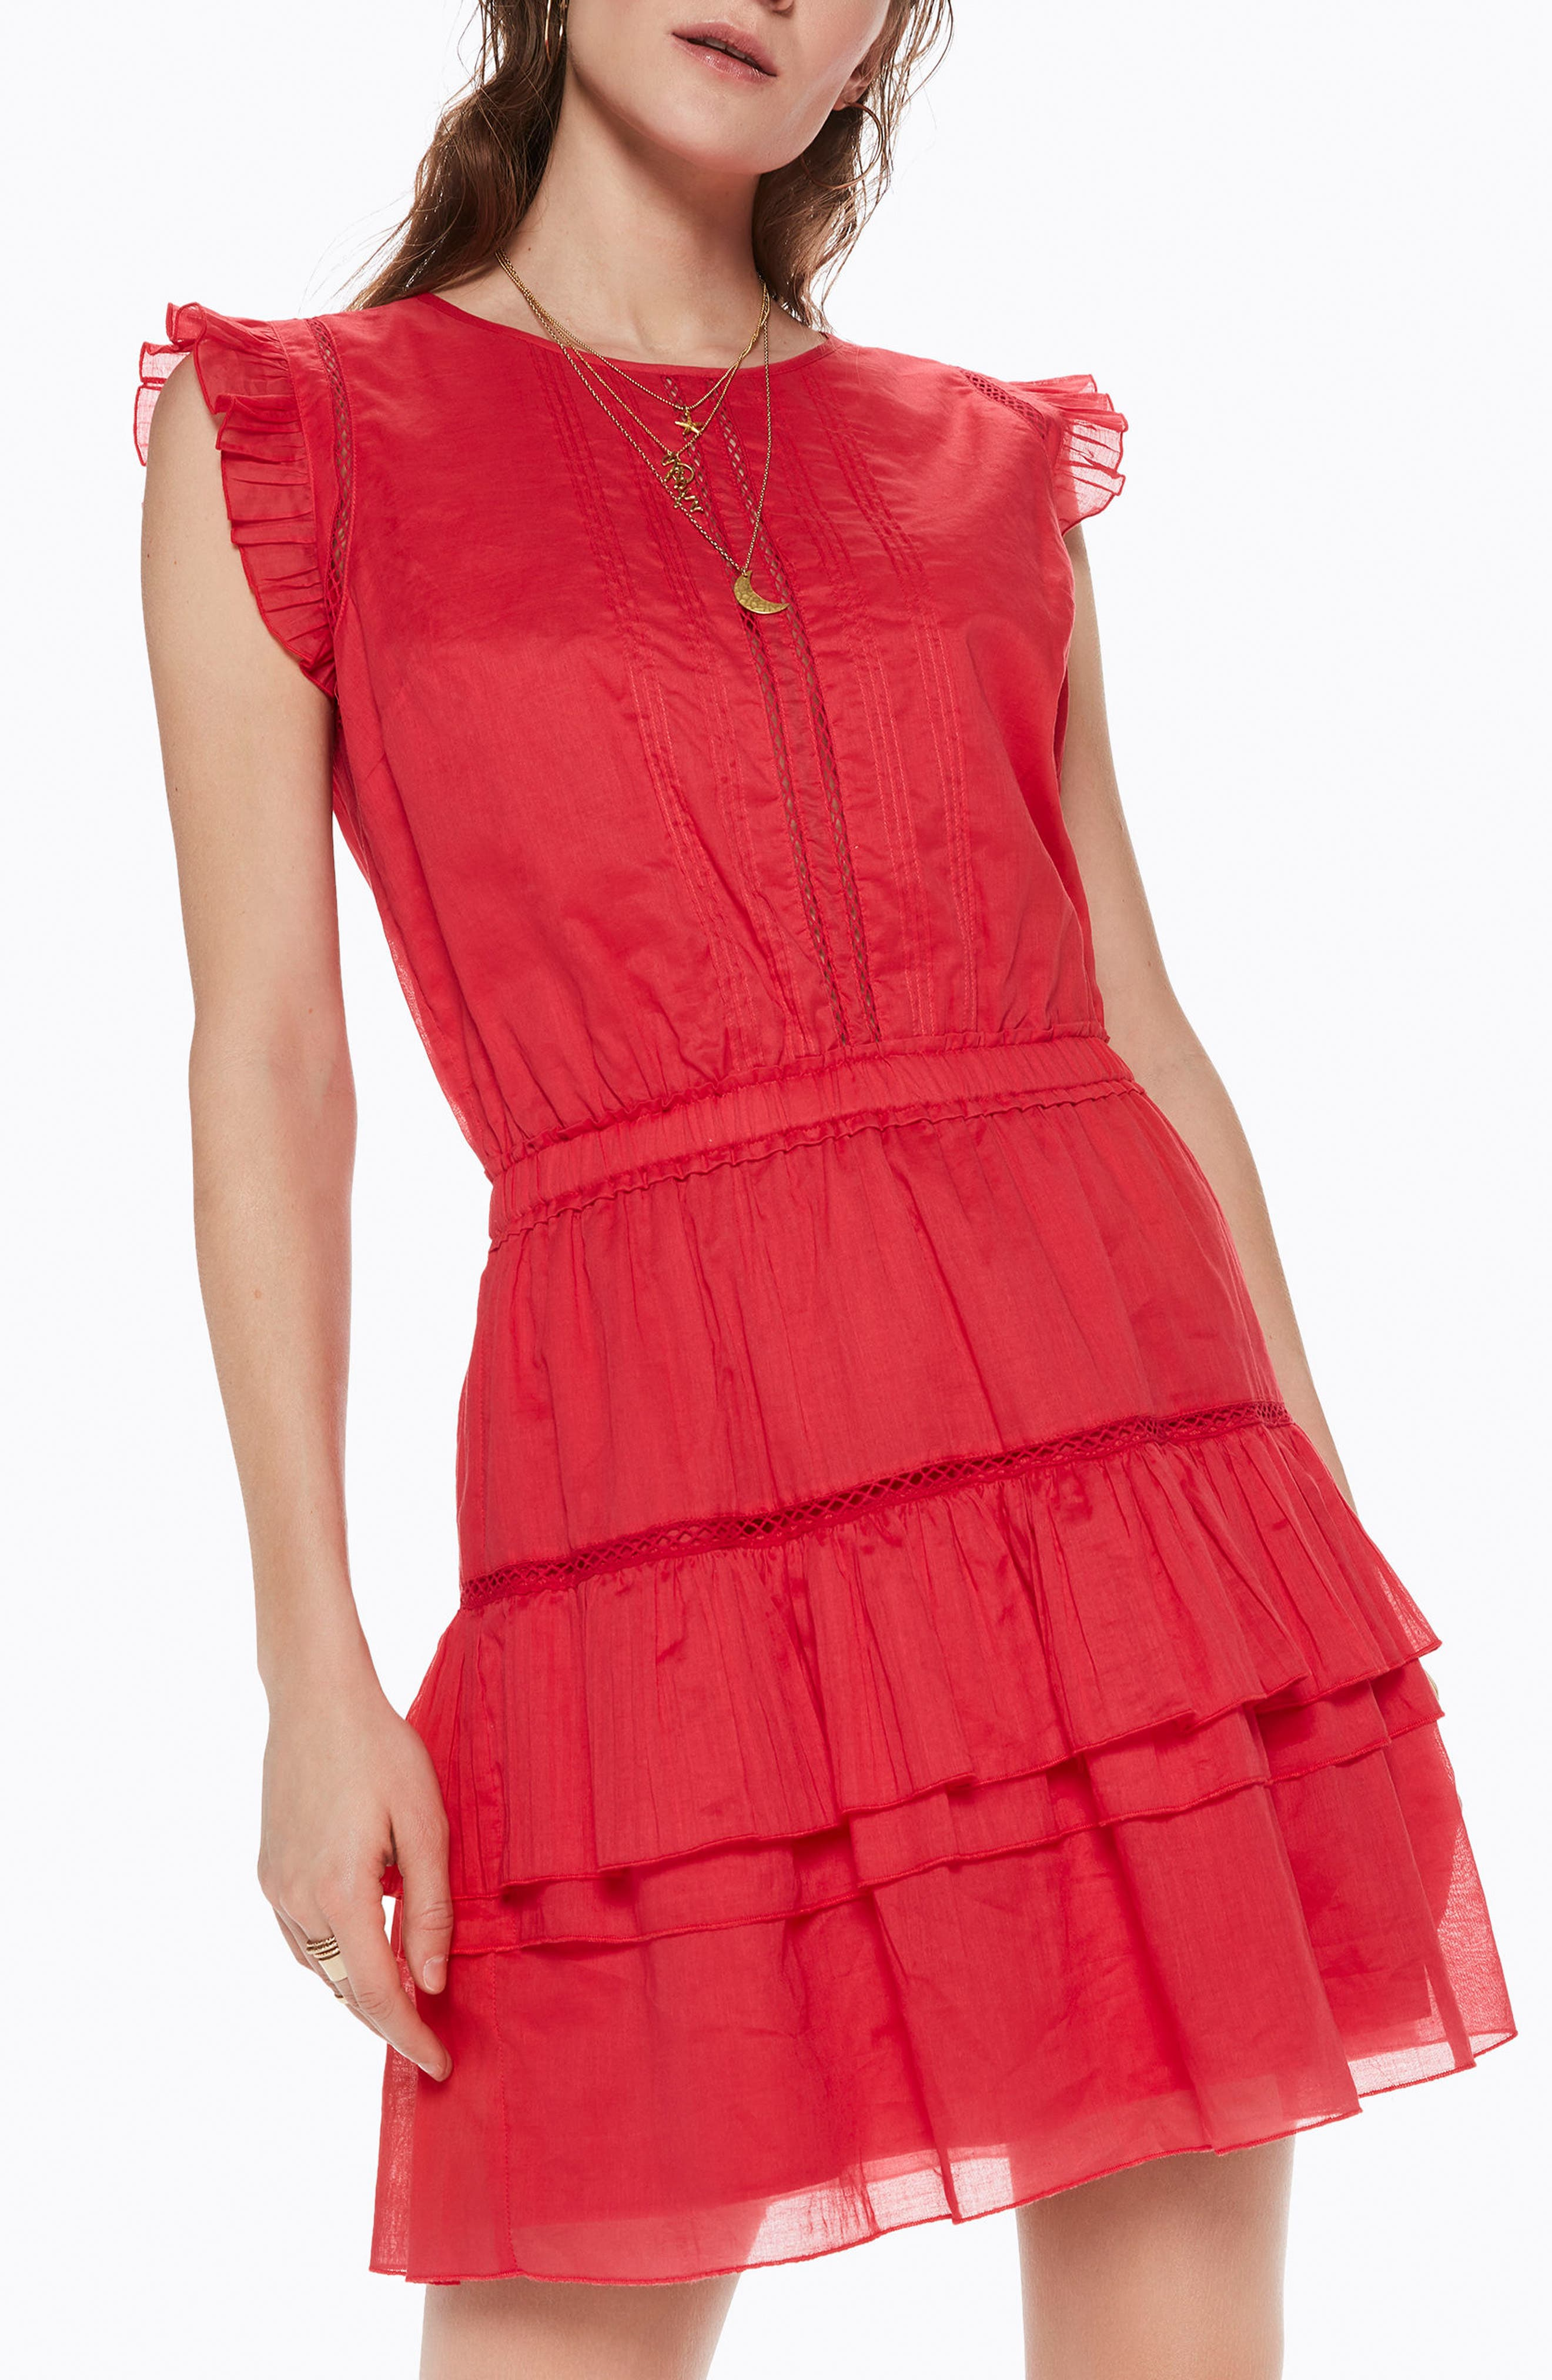 Tiered Sleeveless Dress,                             Main thumbnail 1, color,                             Color 0406 Coral